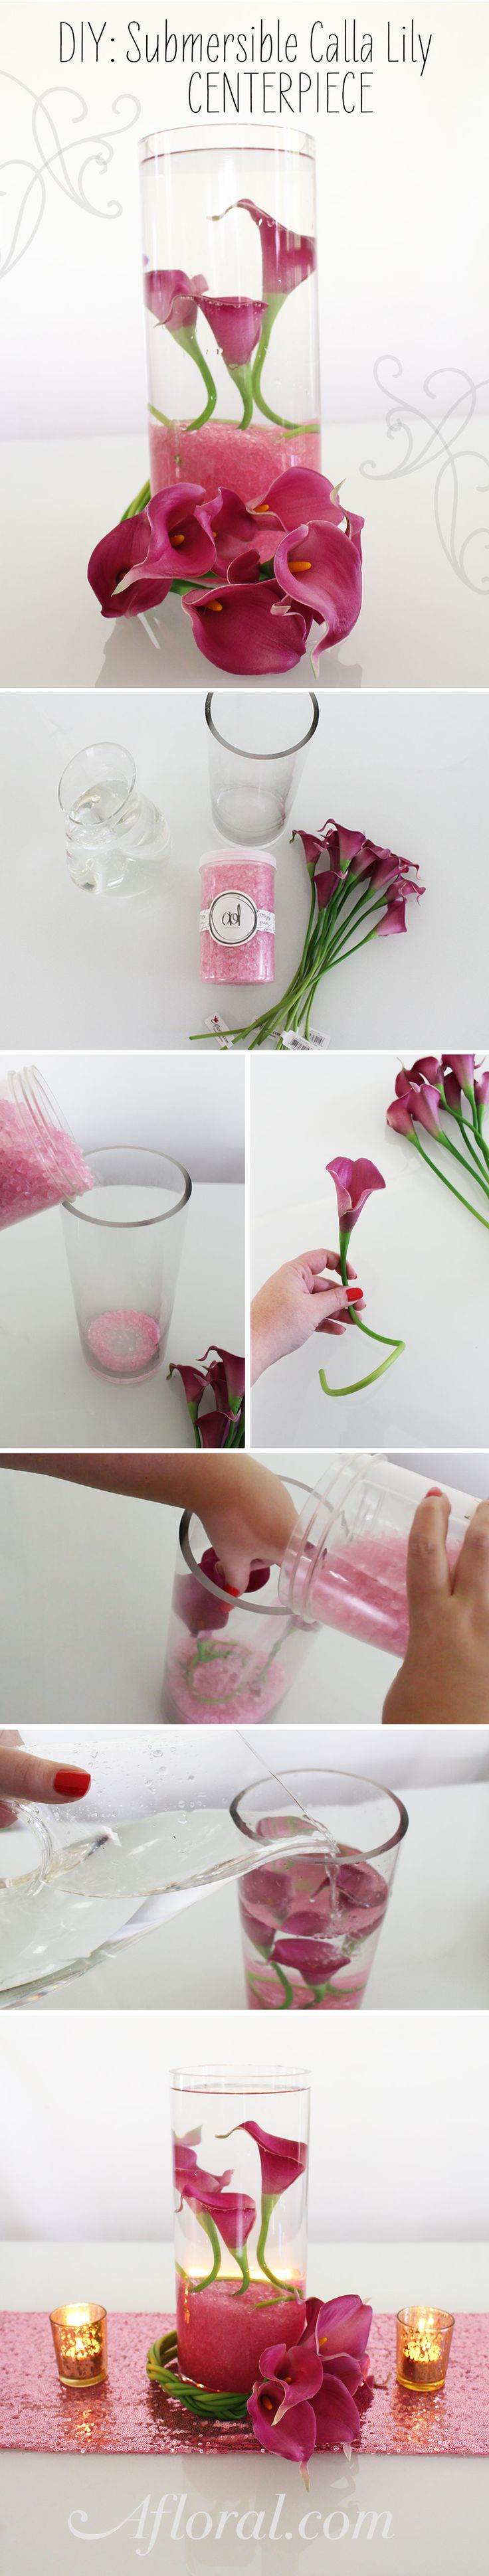 DIY Wedding Centerpiece Ideas from Afloral.com.  Make your own submersible calla lily centerpiece with silk flowers and supplies from Afloral.com.